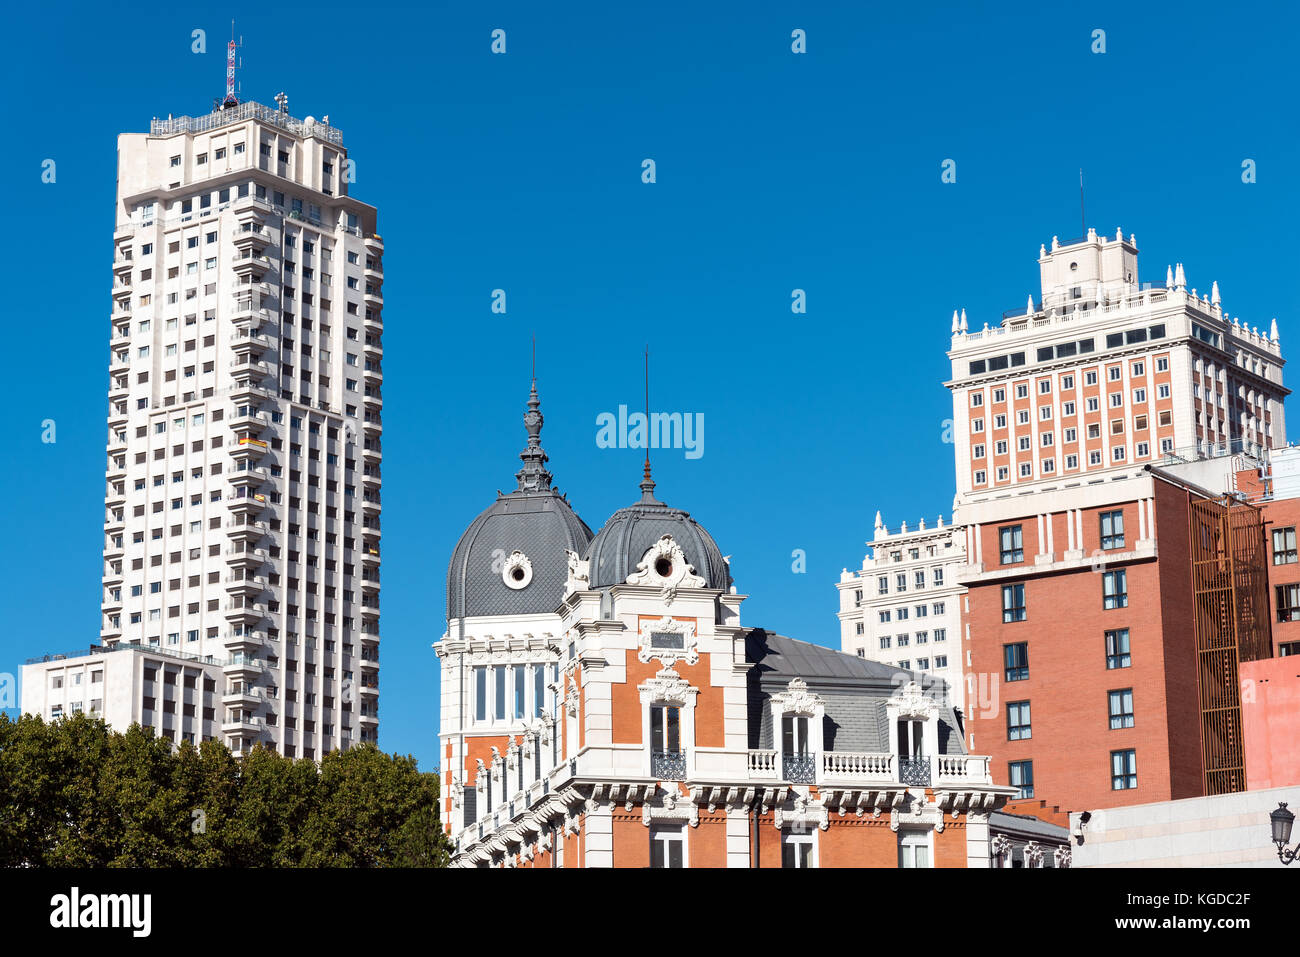 Typical buildings seen in Madrid, Spain Stock Photo